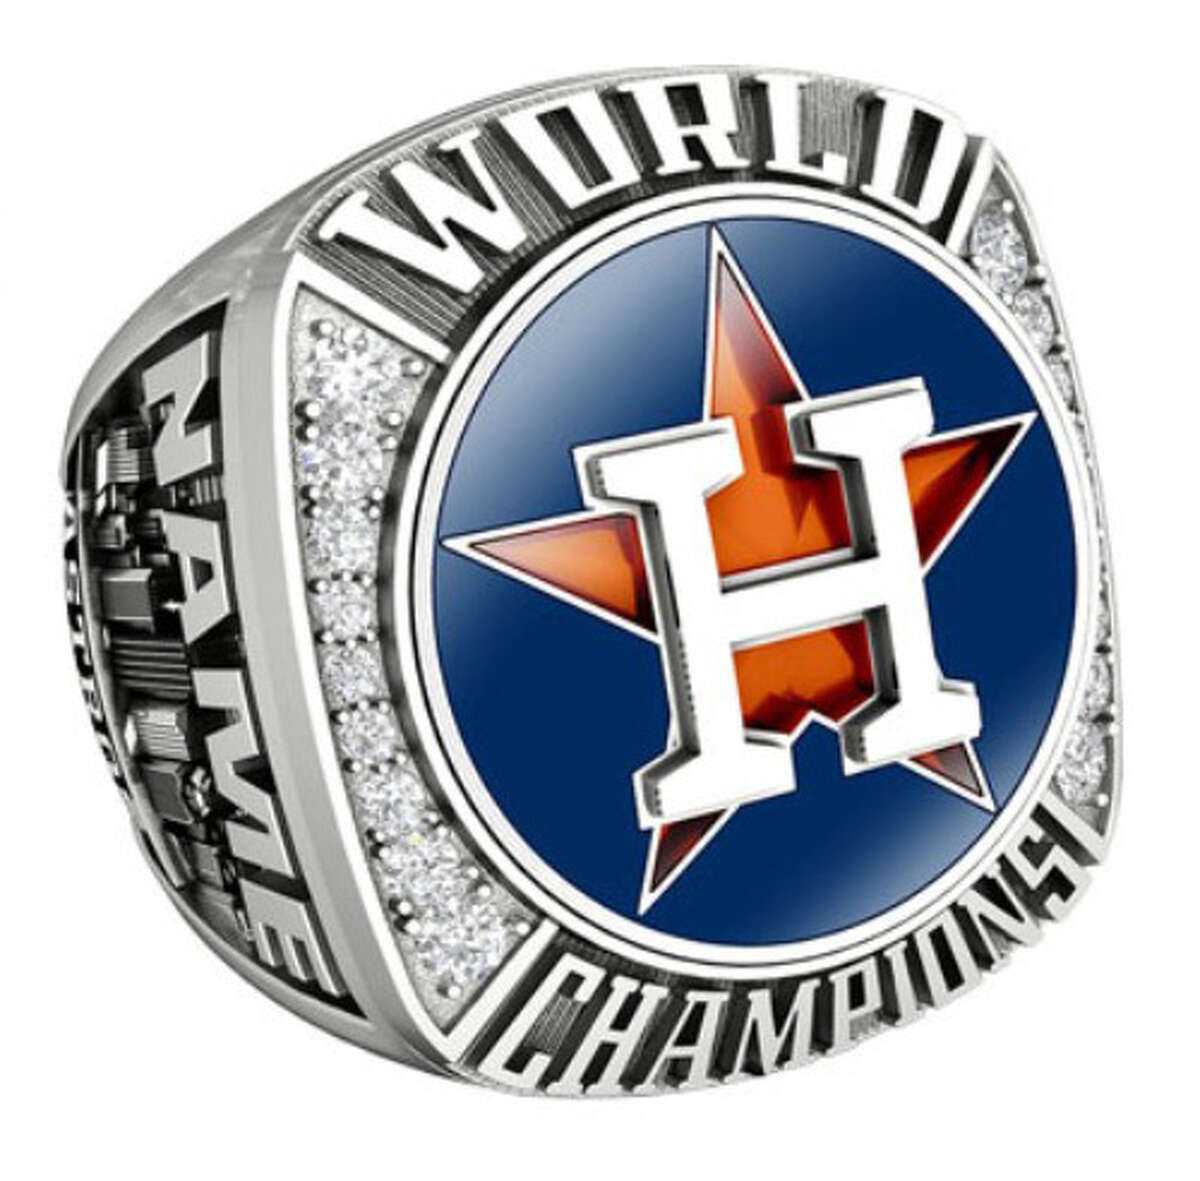 JOSTENS' ASTROS WORLD SERIES JEWELRY COLLECTION Astros fan ring $359